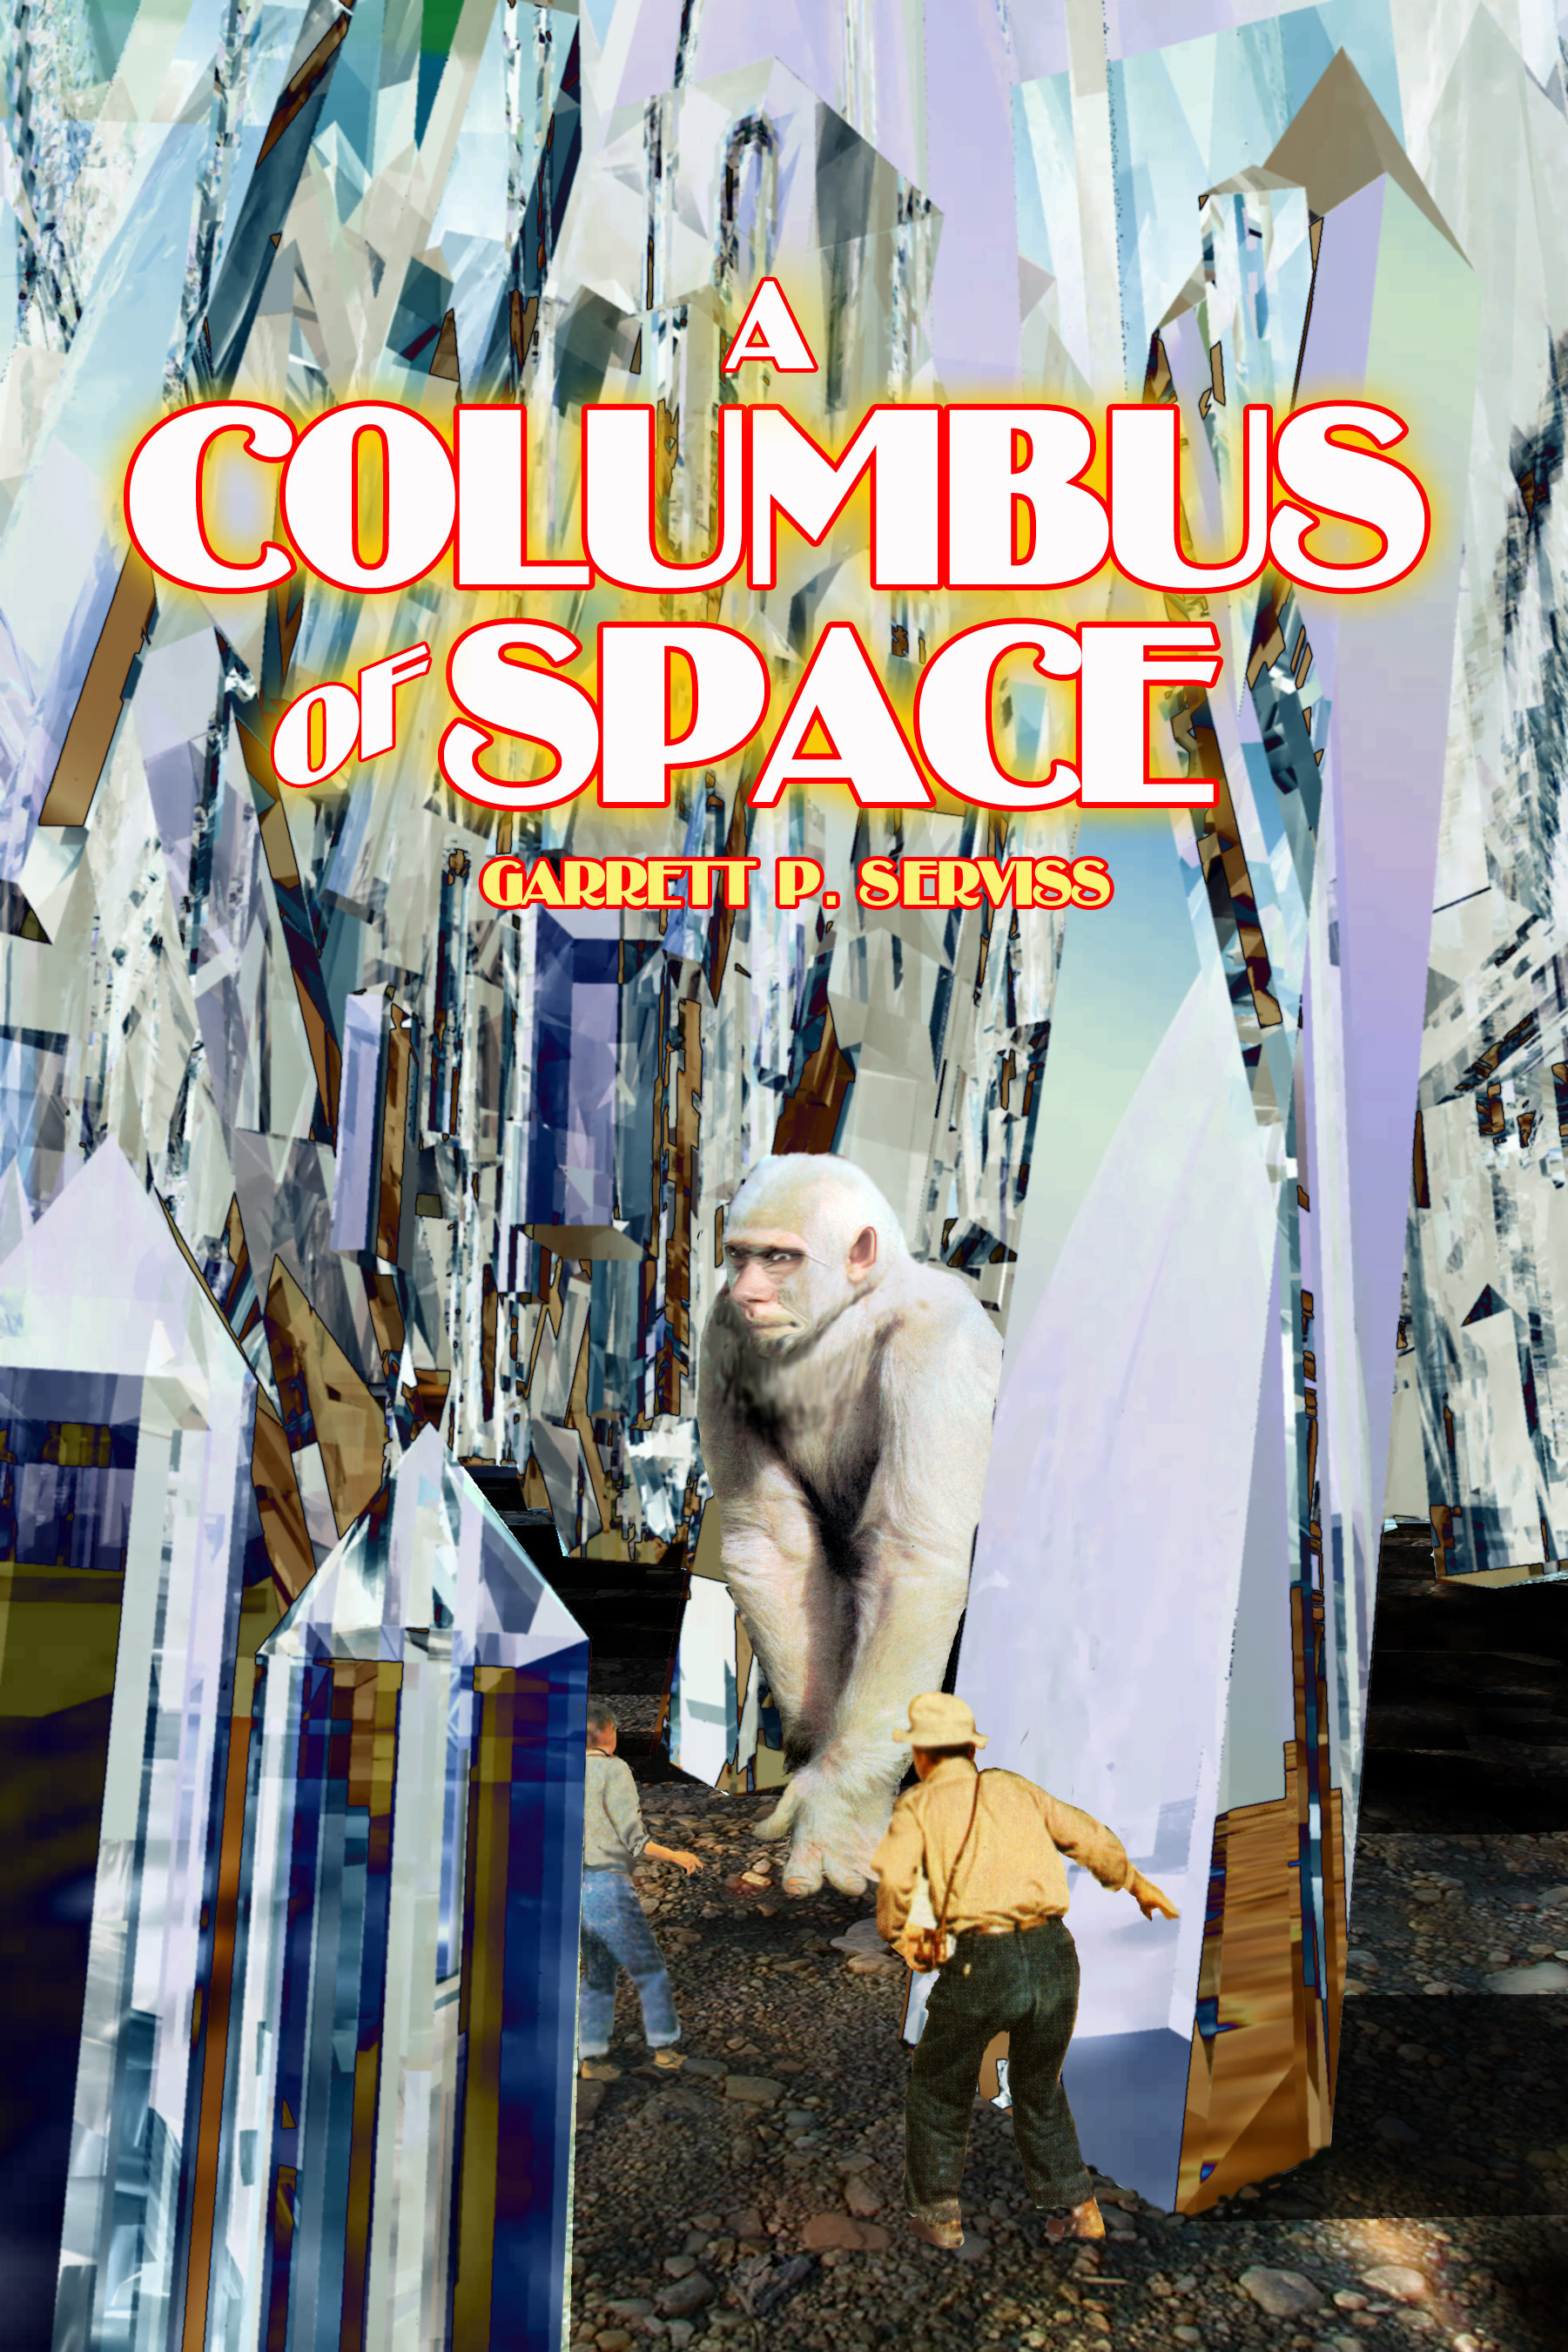 The Columbus of Space